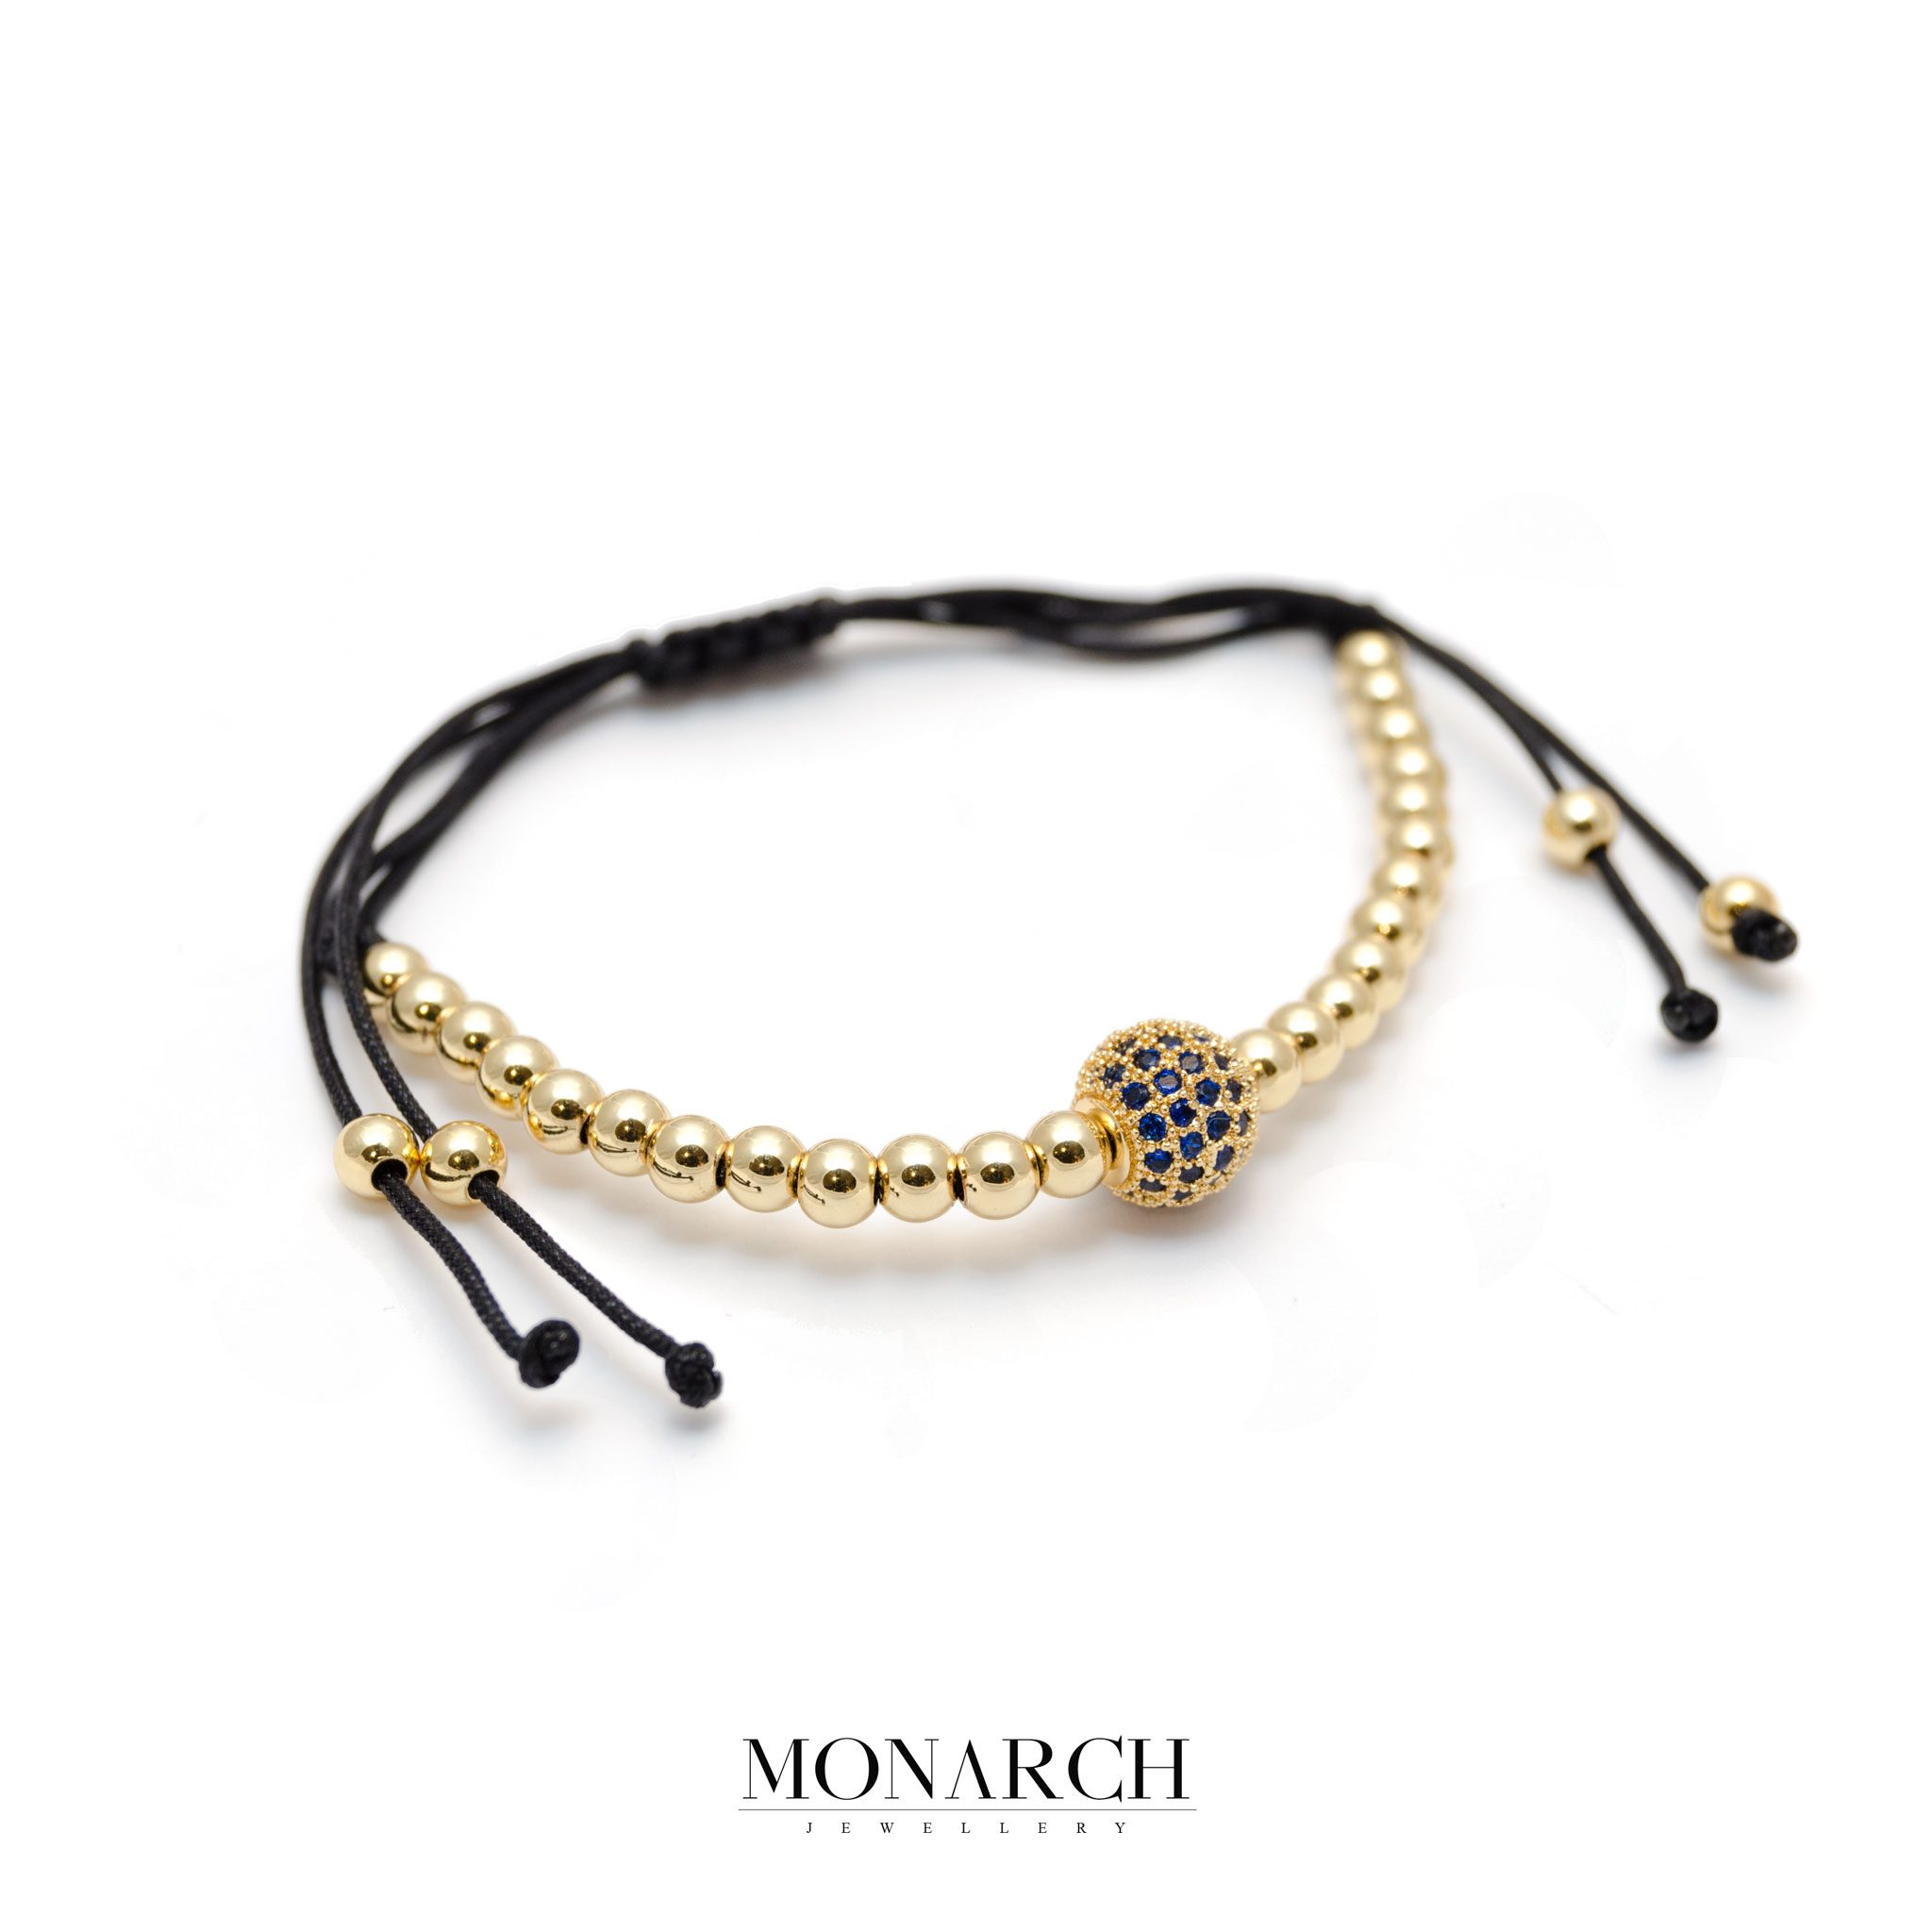 Monarch Jewellery 24K Gold Zircon Solo Bead Macrame Bracelet